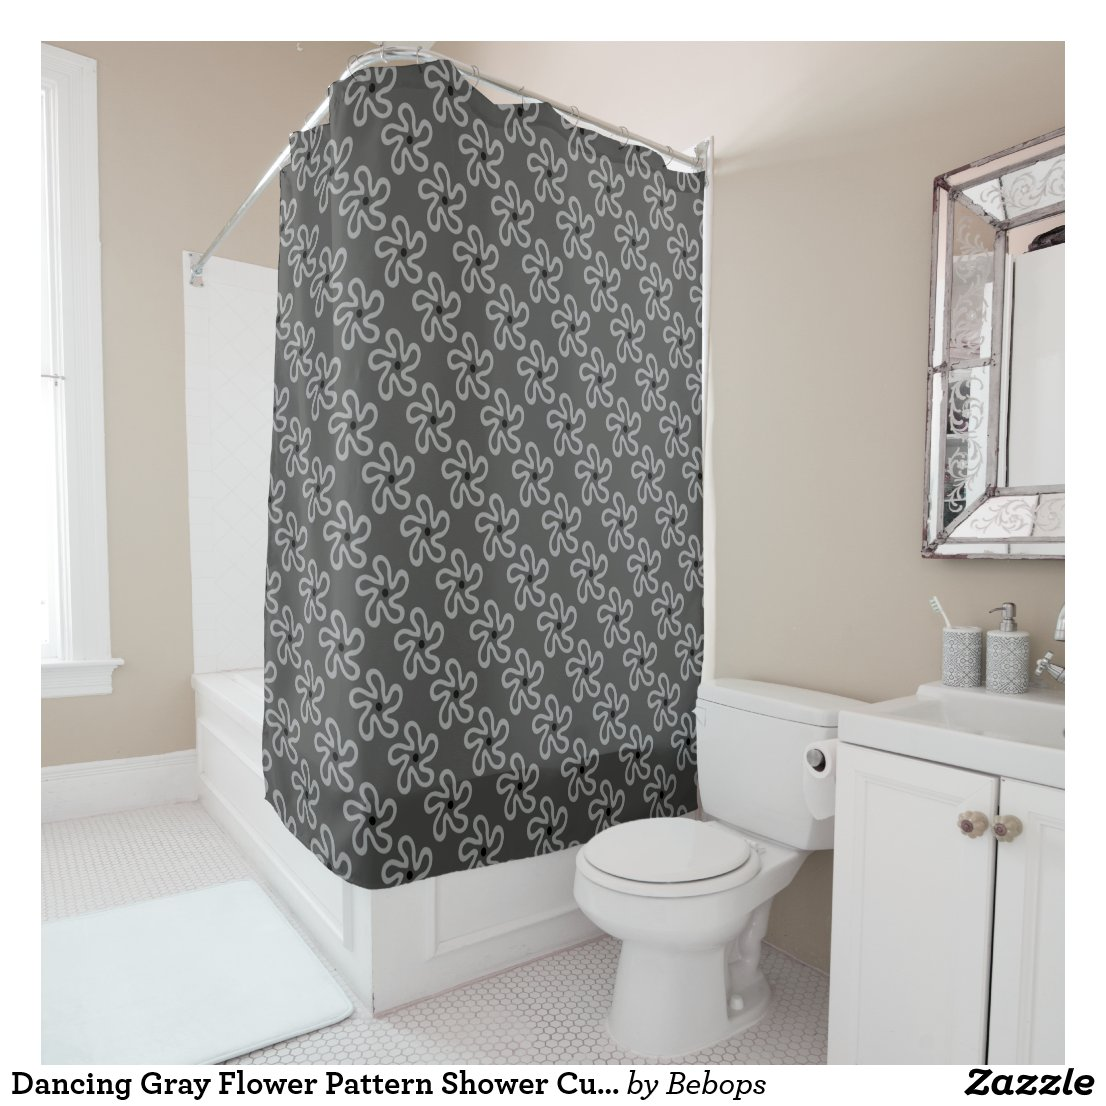 Dancing Gray Flower Pattern Shower Curtain